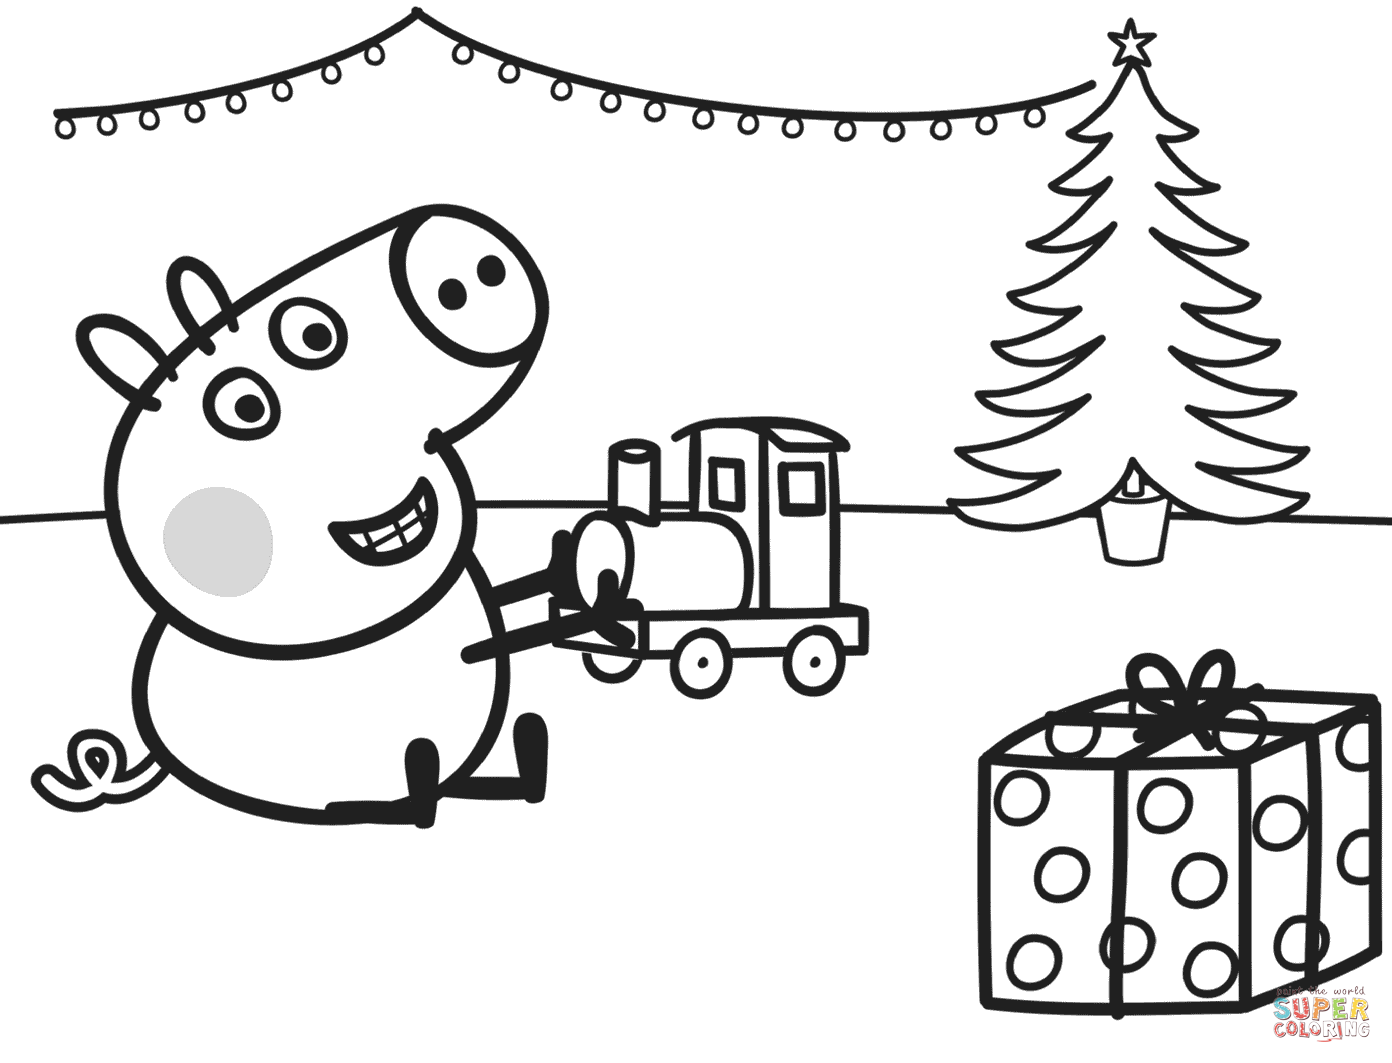 hight resolution of 1392x1063 george plays with xmas train coloring page free printable